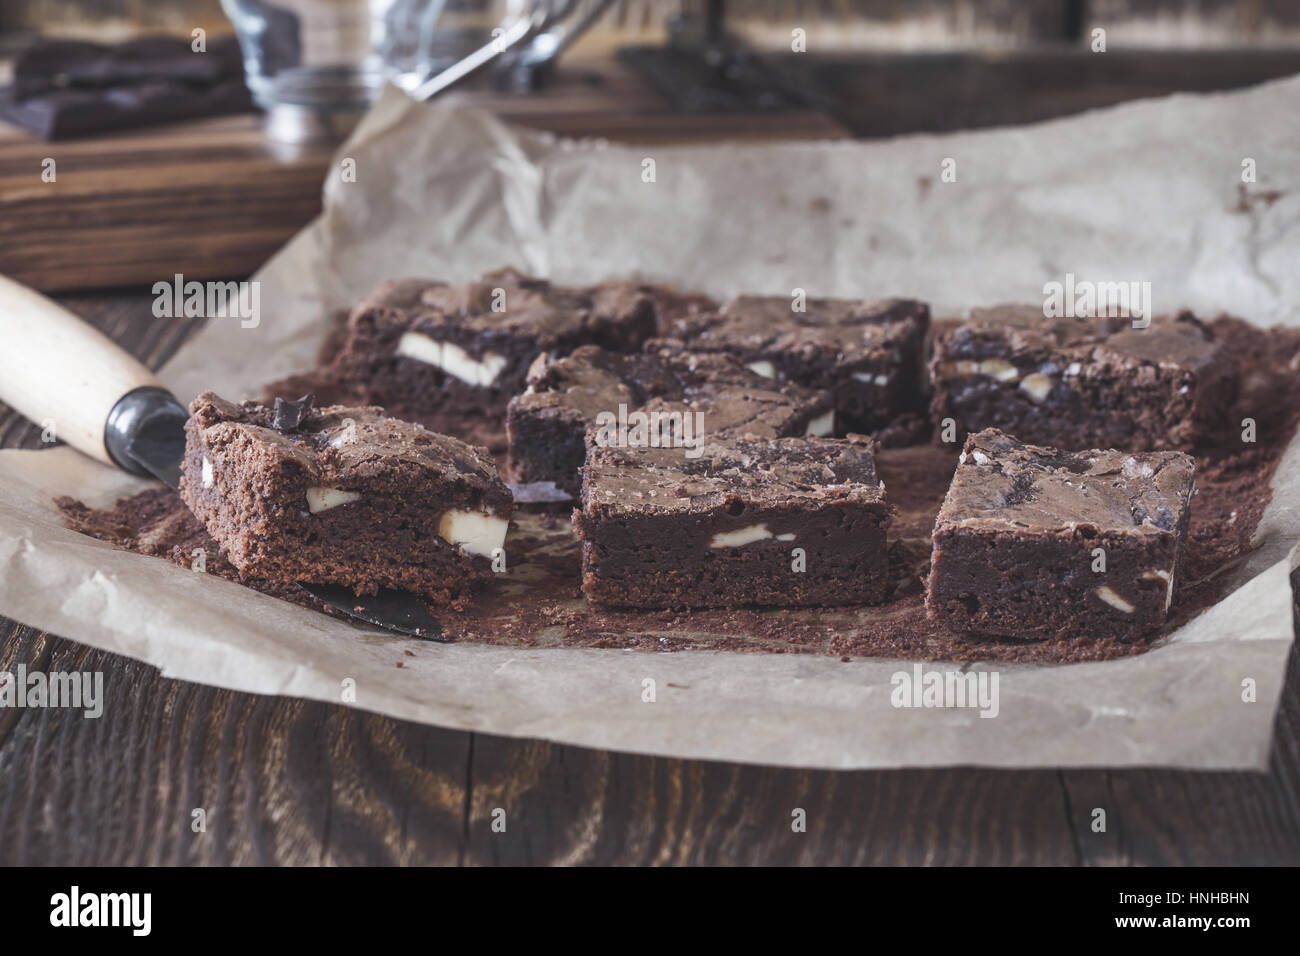 Homemade dark chocolate brownies with cream cheese on baking paper on rustic wooden table - Stock Image